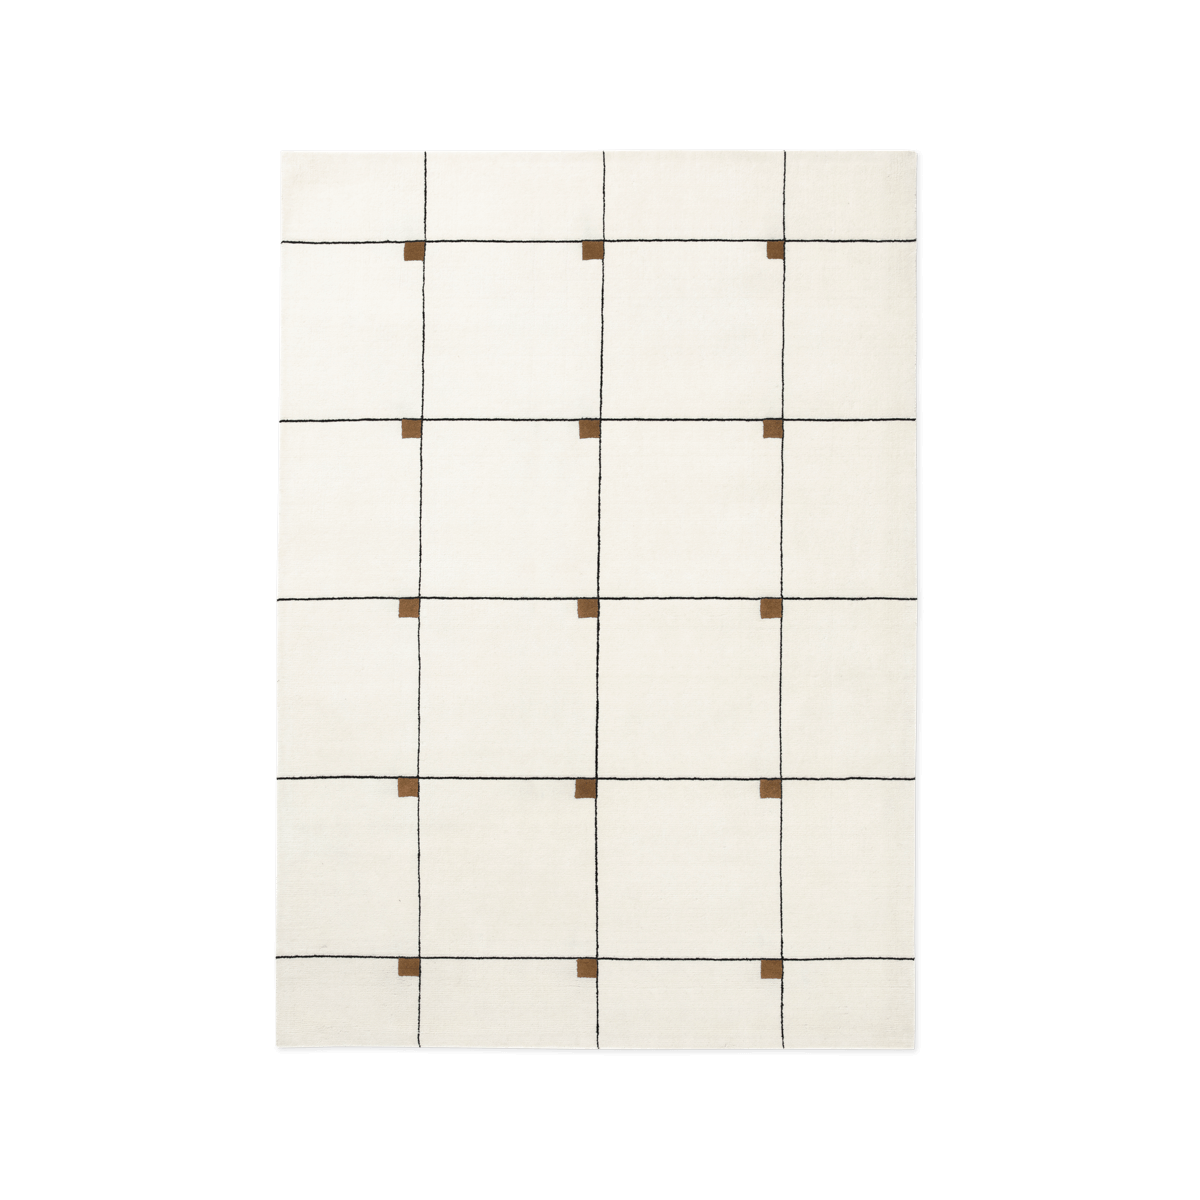 Product image of the plush rug Modern in the color Cream. The rug has a square pattern with small tobacco squares in the upper right corners of the larger squares.